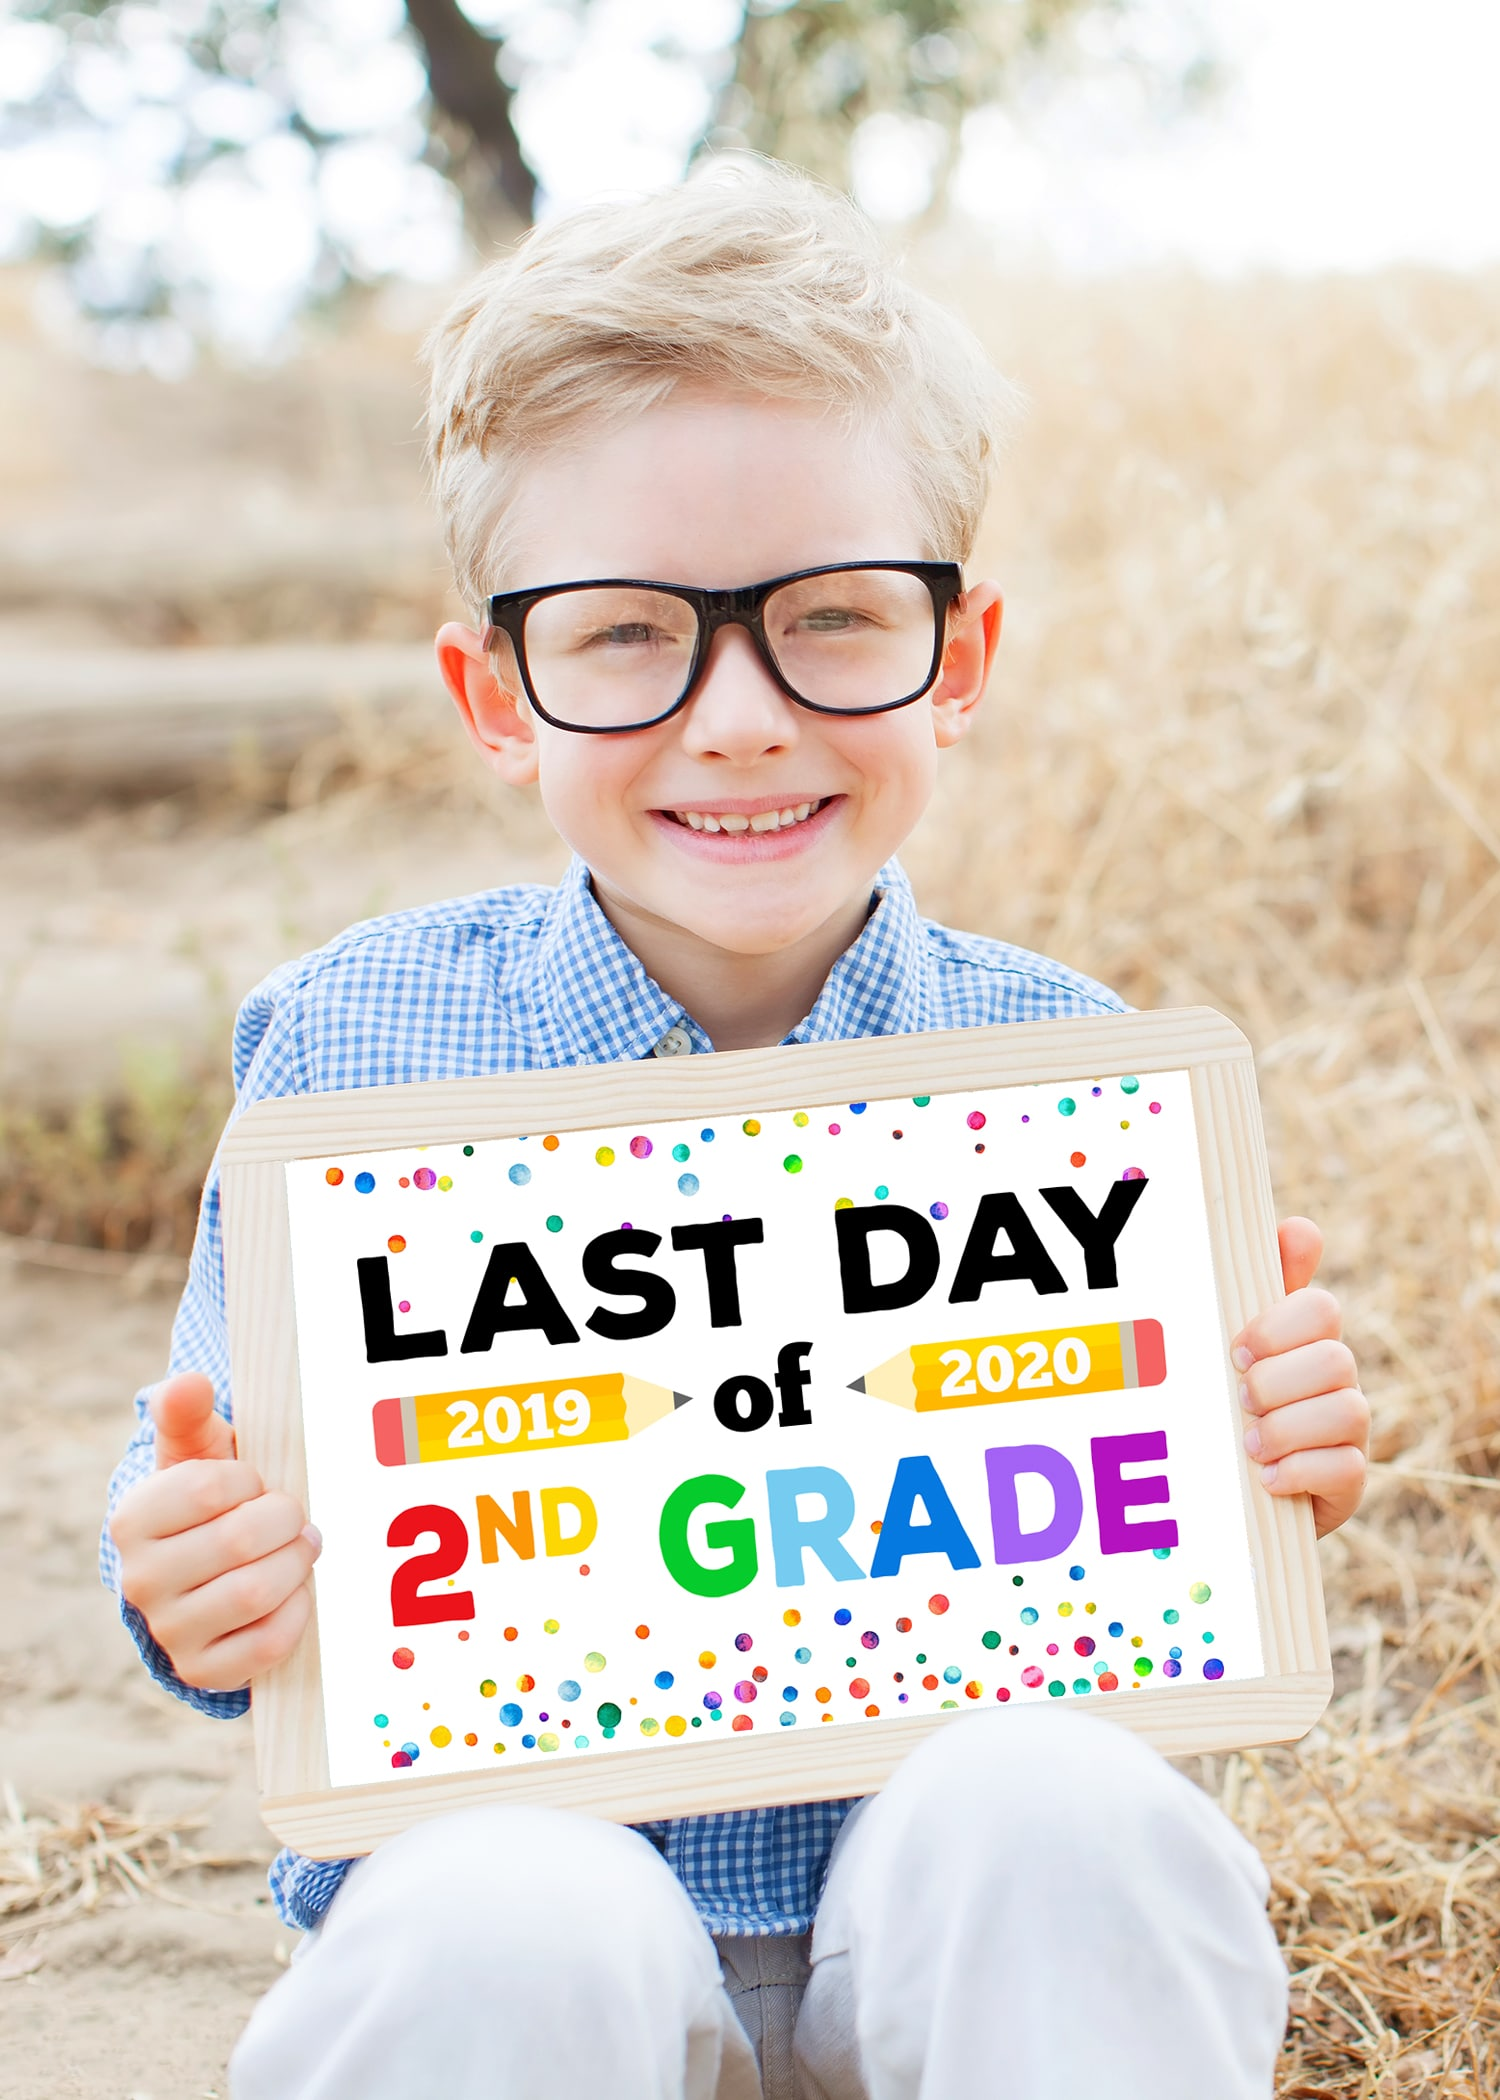 smart excited little boy in glasses holding chalkboard ready for school, back to school concept